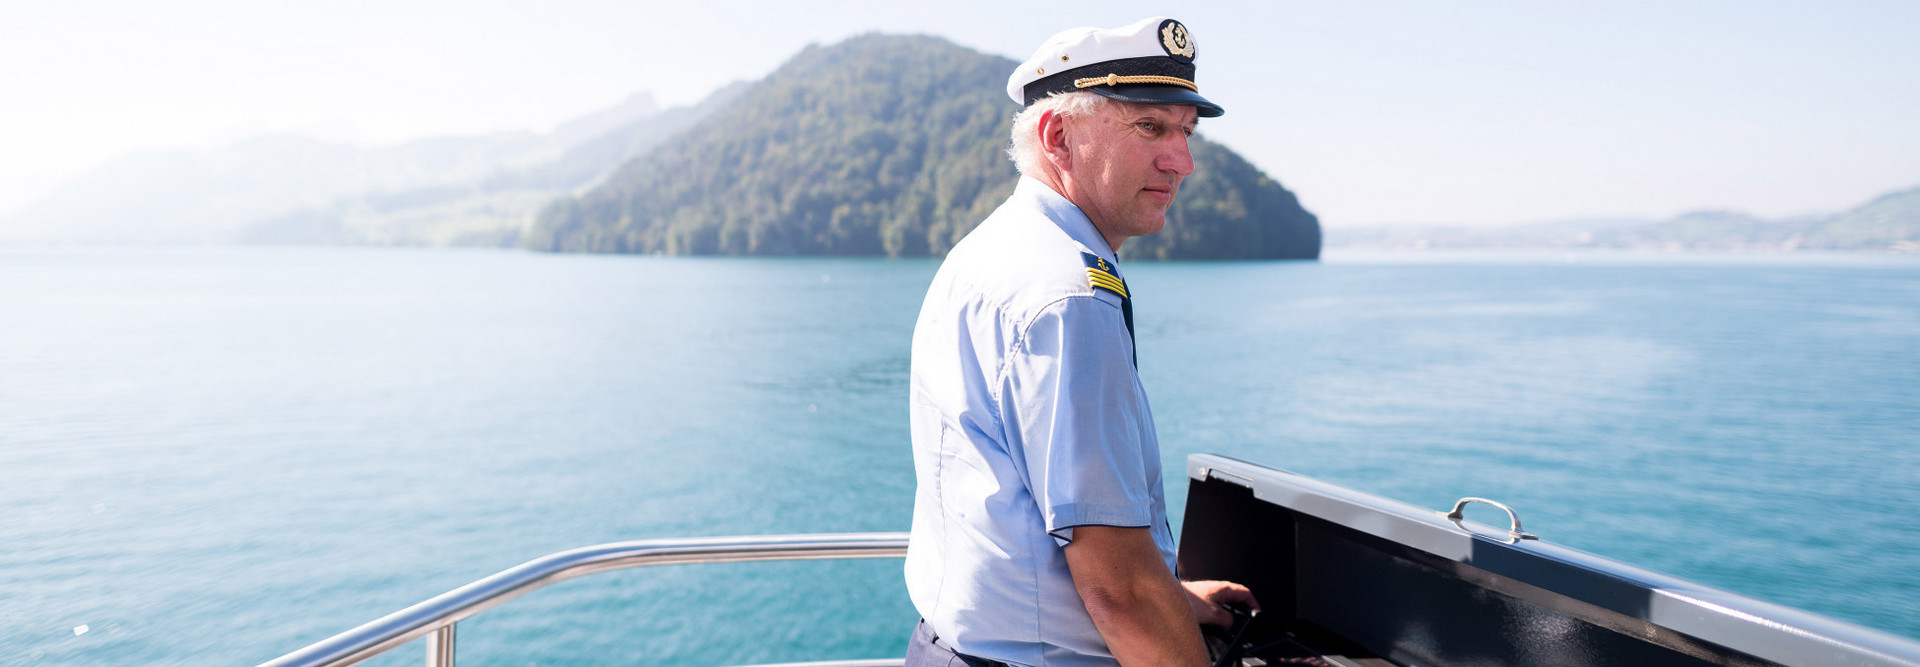 The chief captain of the SGV steers the motor vessel across Lake Lucerne.